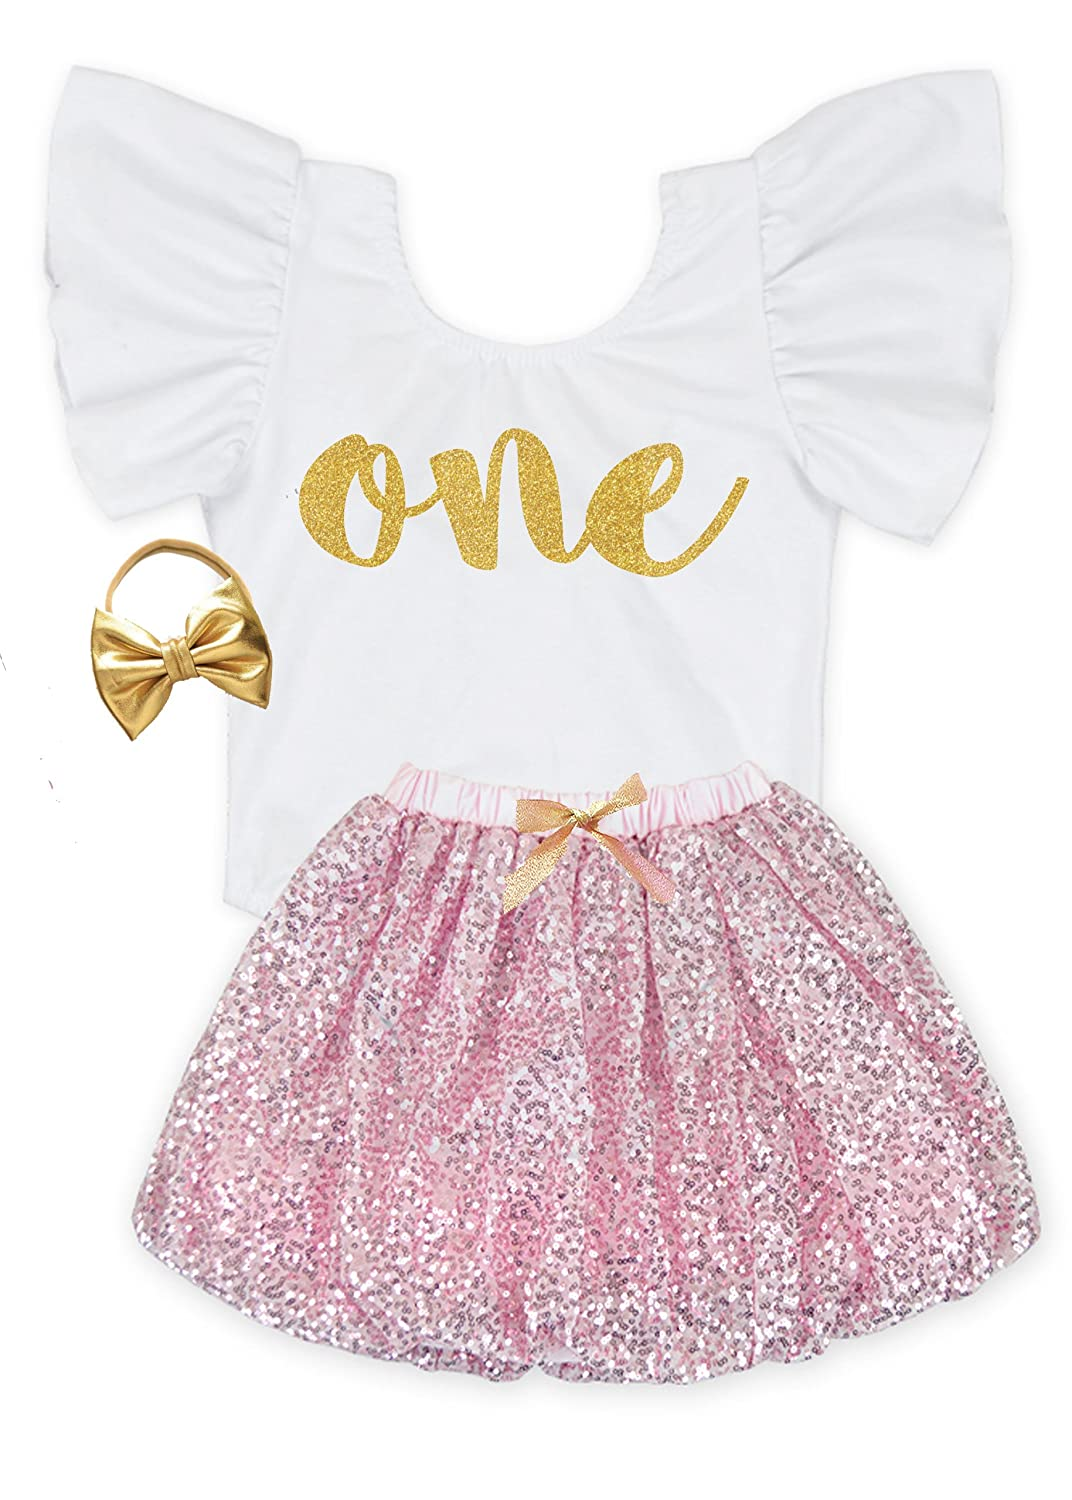 d8c290f9cad 3 PIECE BABY GIRLS BIRTHDAY OUTFIT- Each Package Include A White Flutter  Sleeve Leotard (No Snaps At The Bottom) with a Glitter One